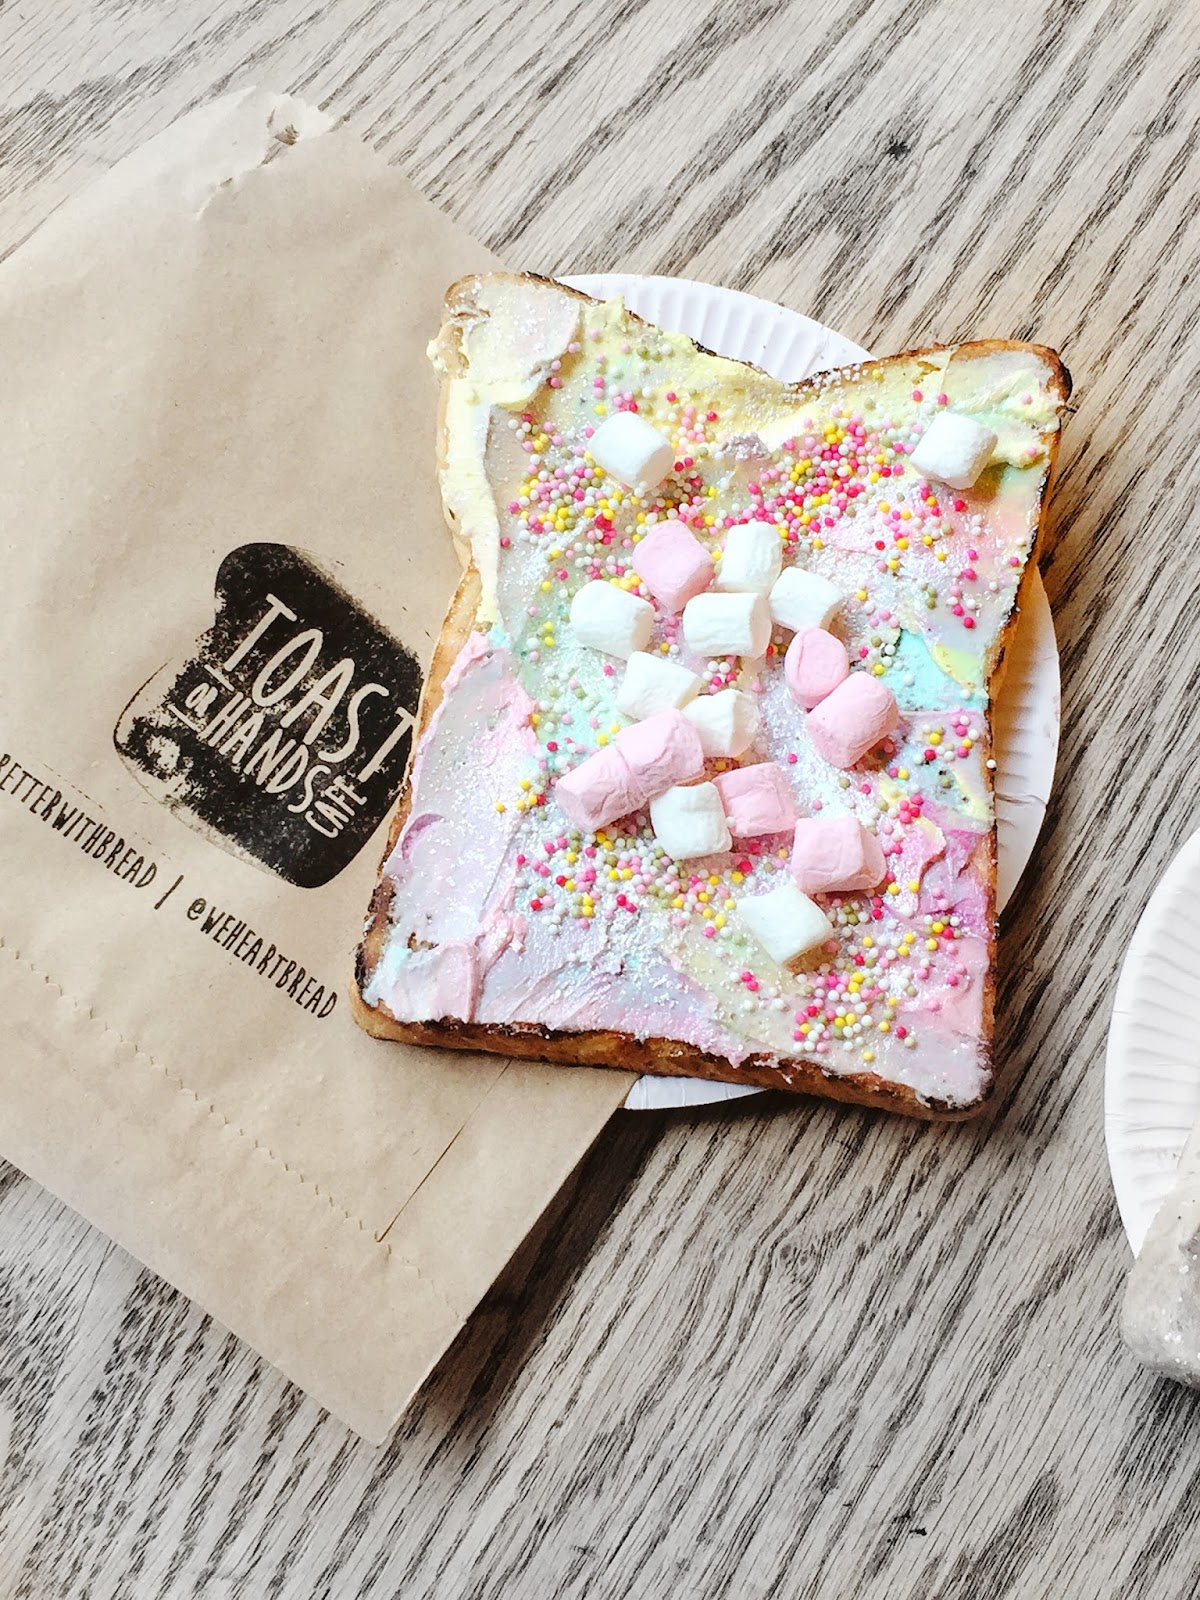 How To Make Unicorn Toast, Why Bread Is Actually Good For You, Unicorn Toast, things to do with the kids in the summer holidays, unicorn, coloured toast, unicorn toast recipe, is bread good for you